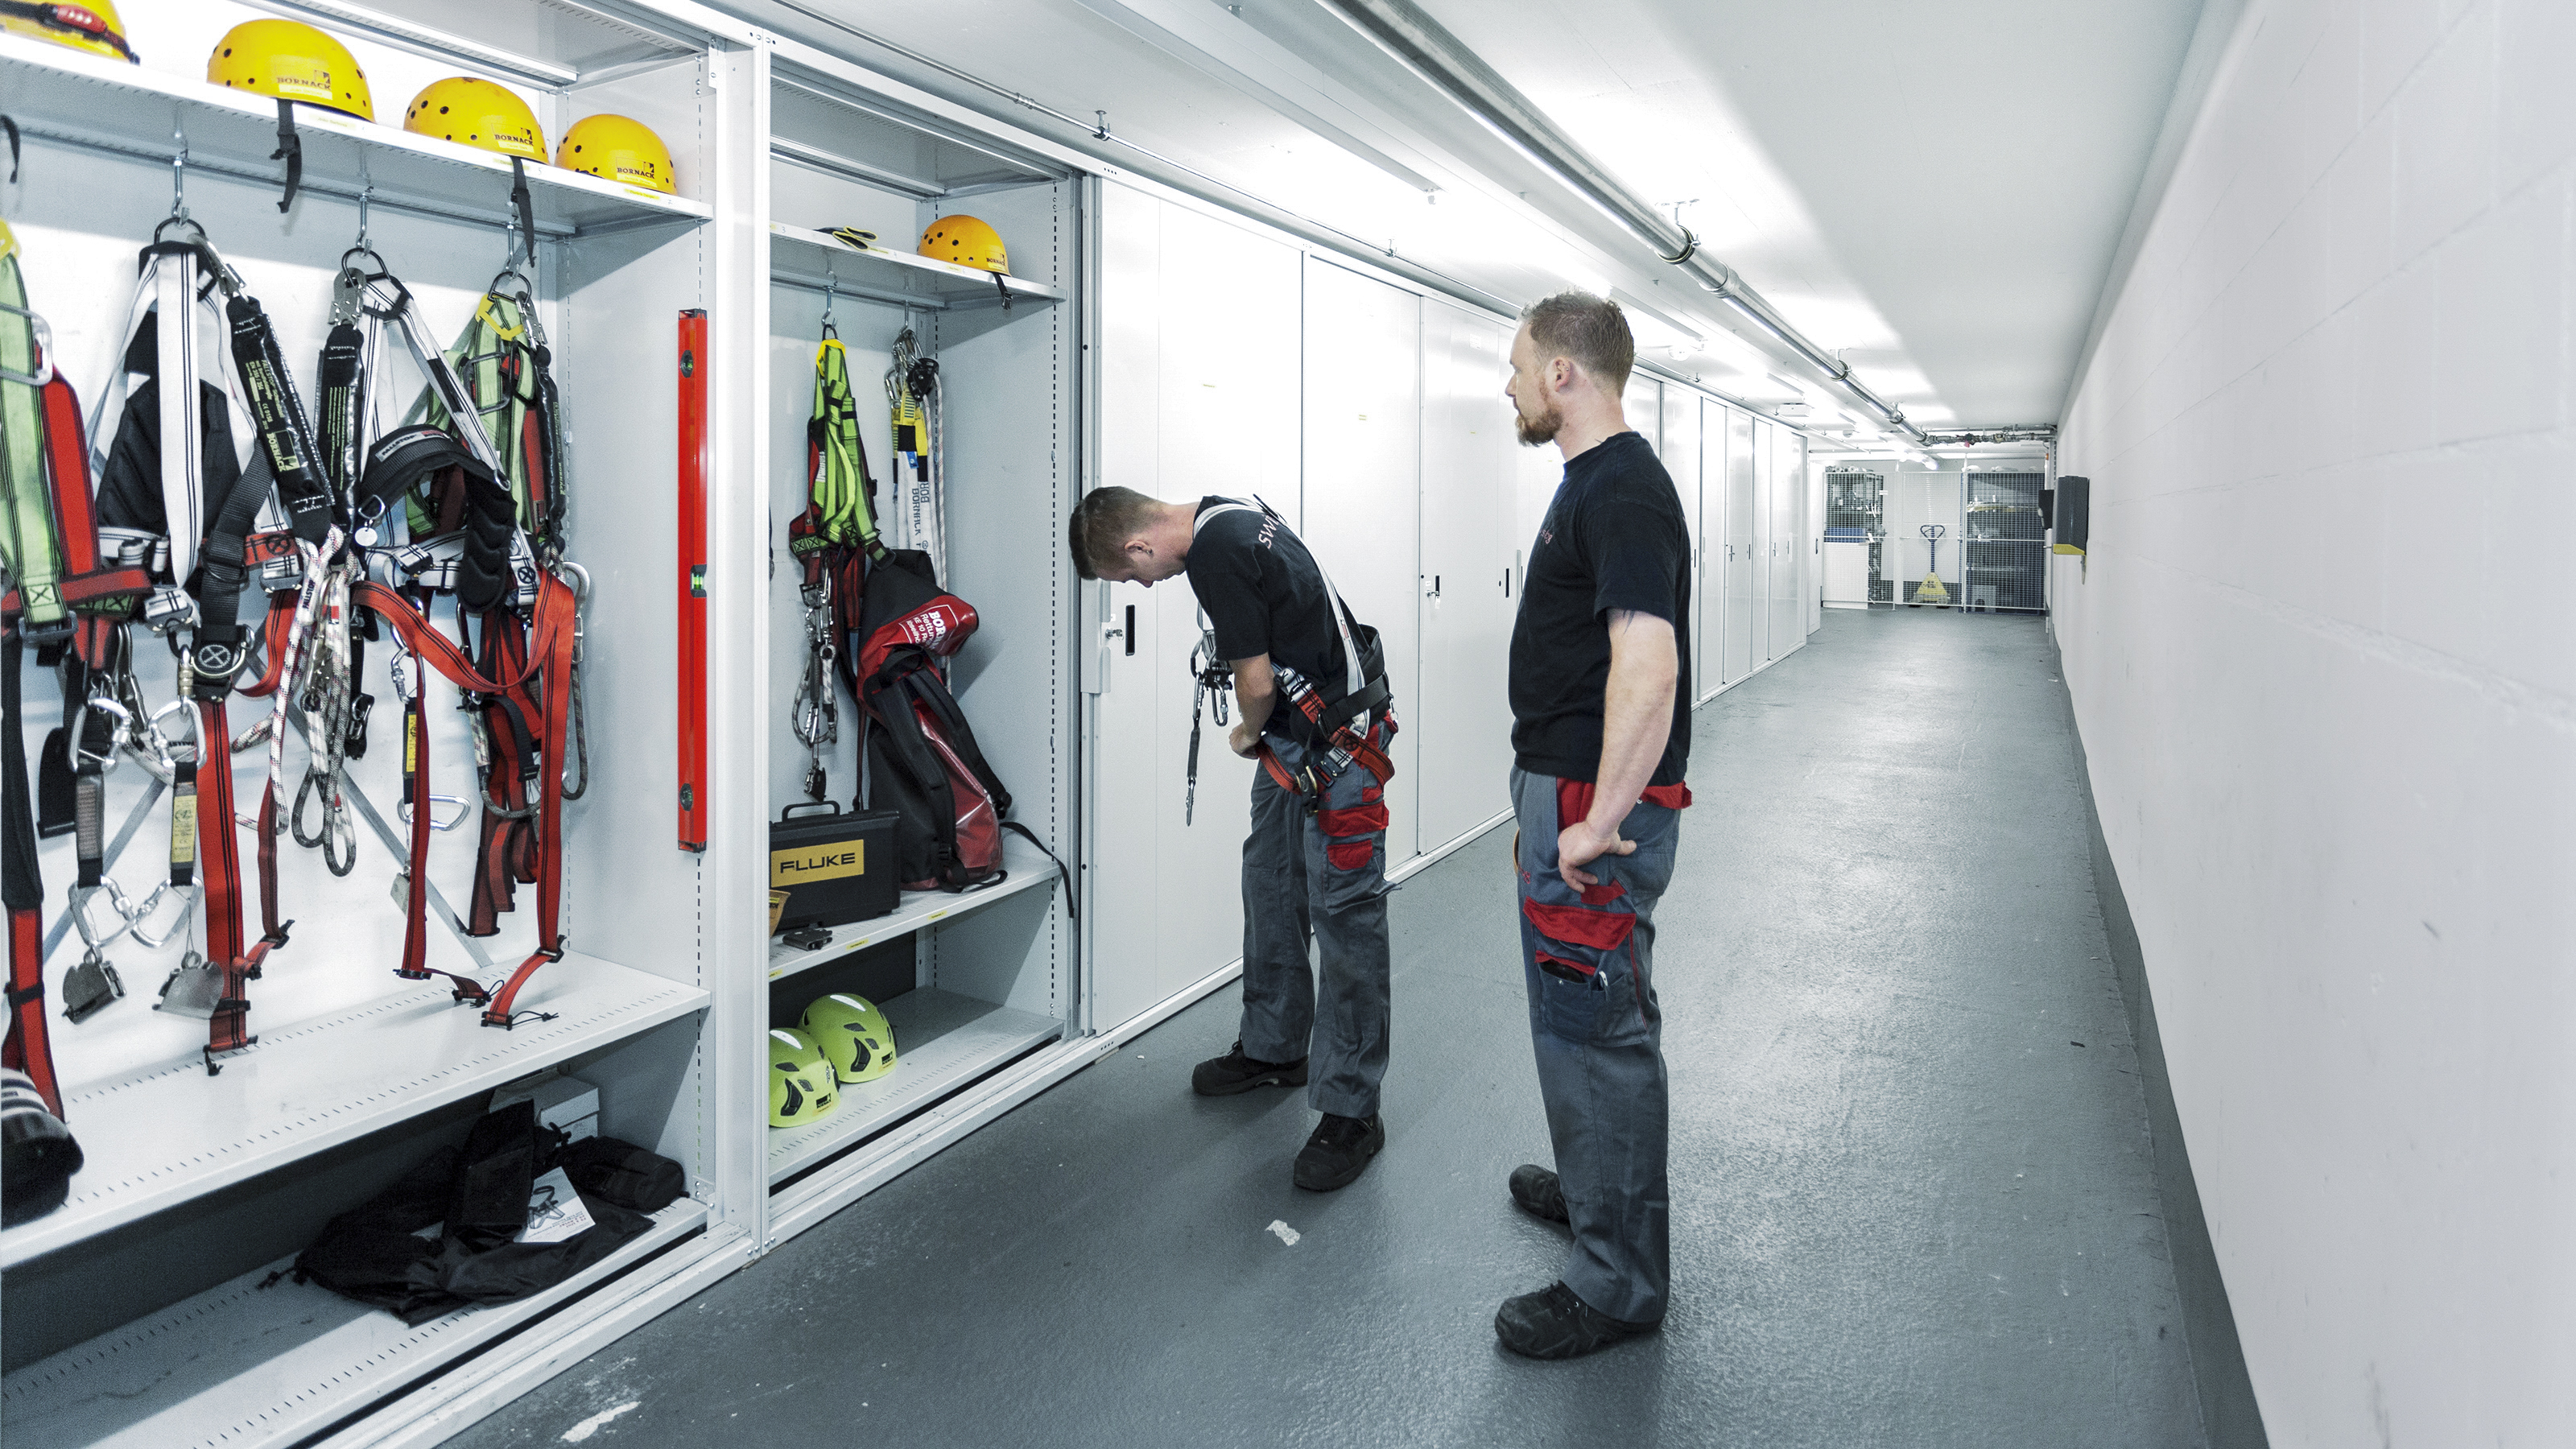 On-site warehouse automation safety training from Swisslog at AMAG